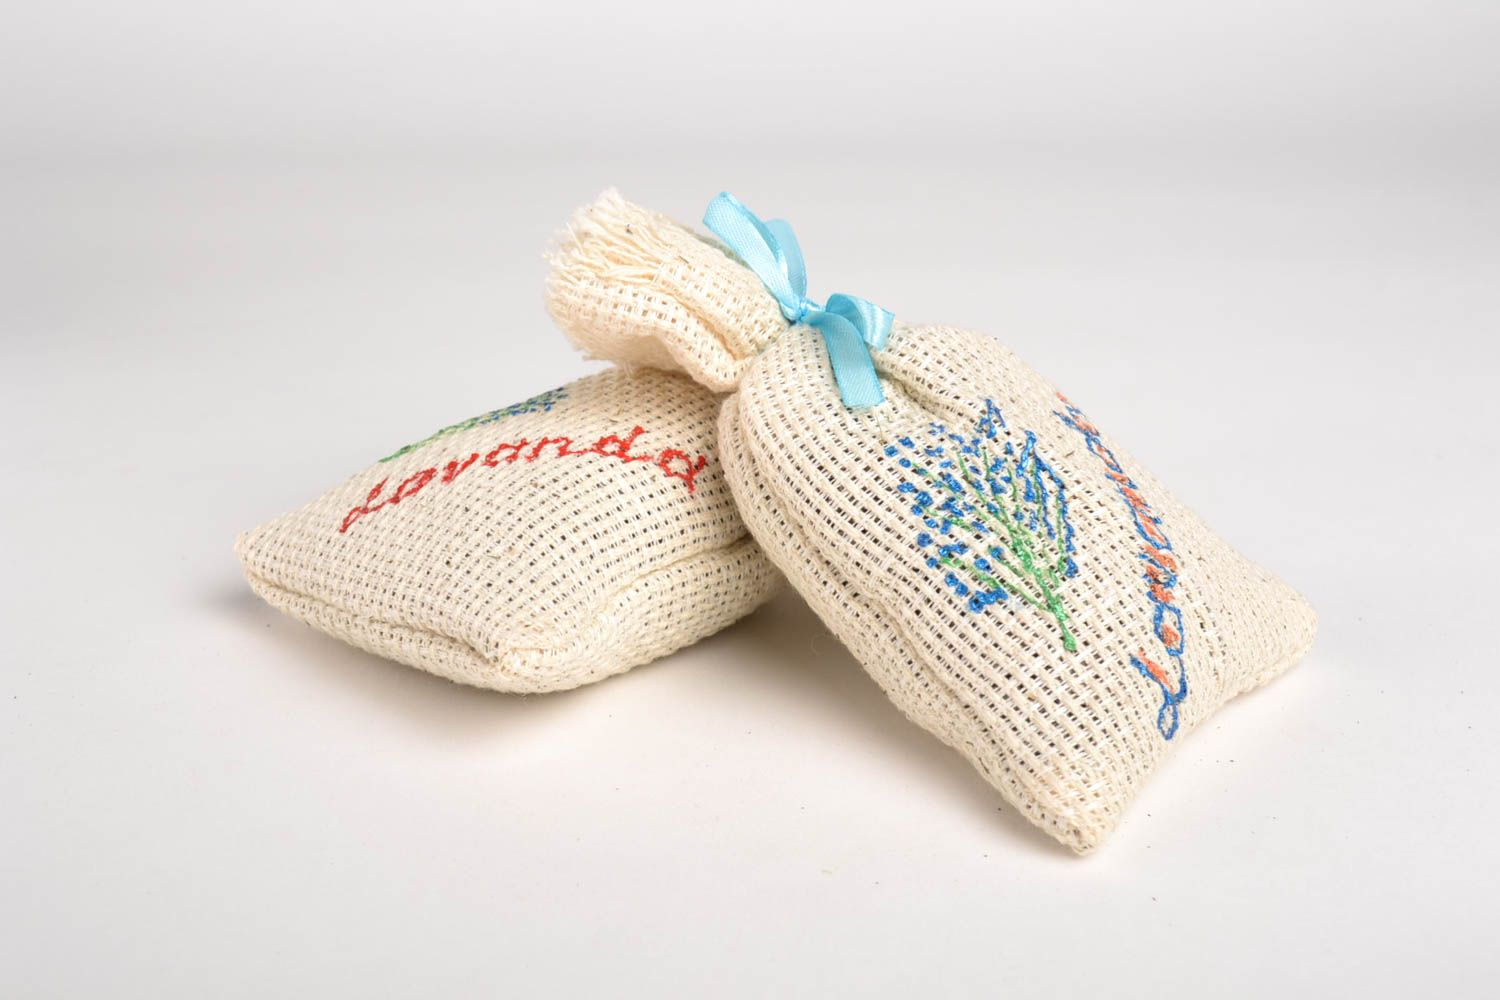 Handmade scented sachets lavender bags souvenir ideas aroma therapy sachets photo 2